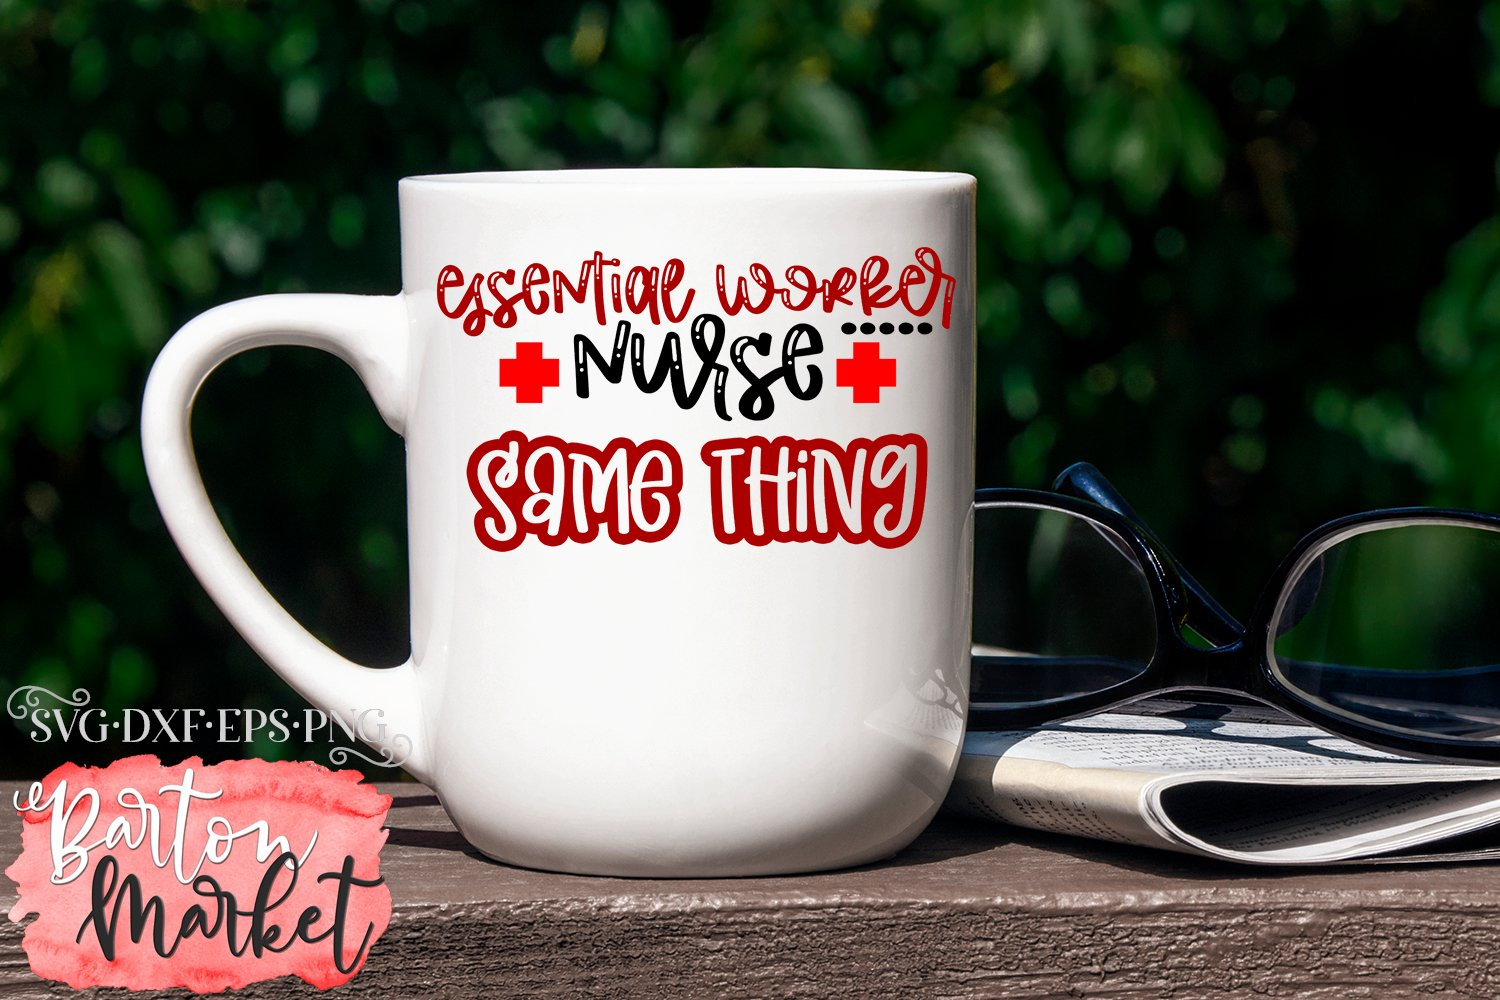 Essential Worker Nurse Same Thing SVG DXF EPS PNG example image 3